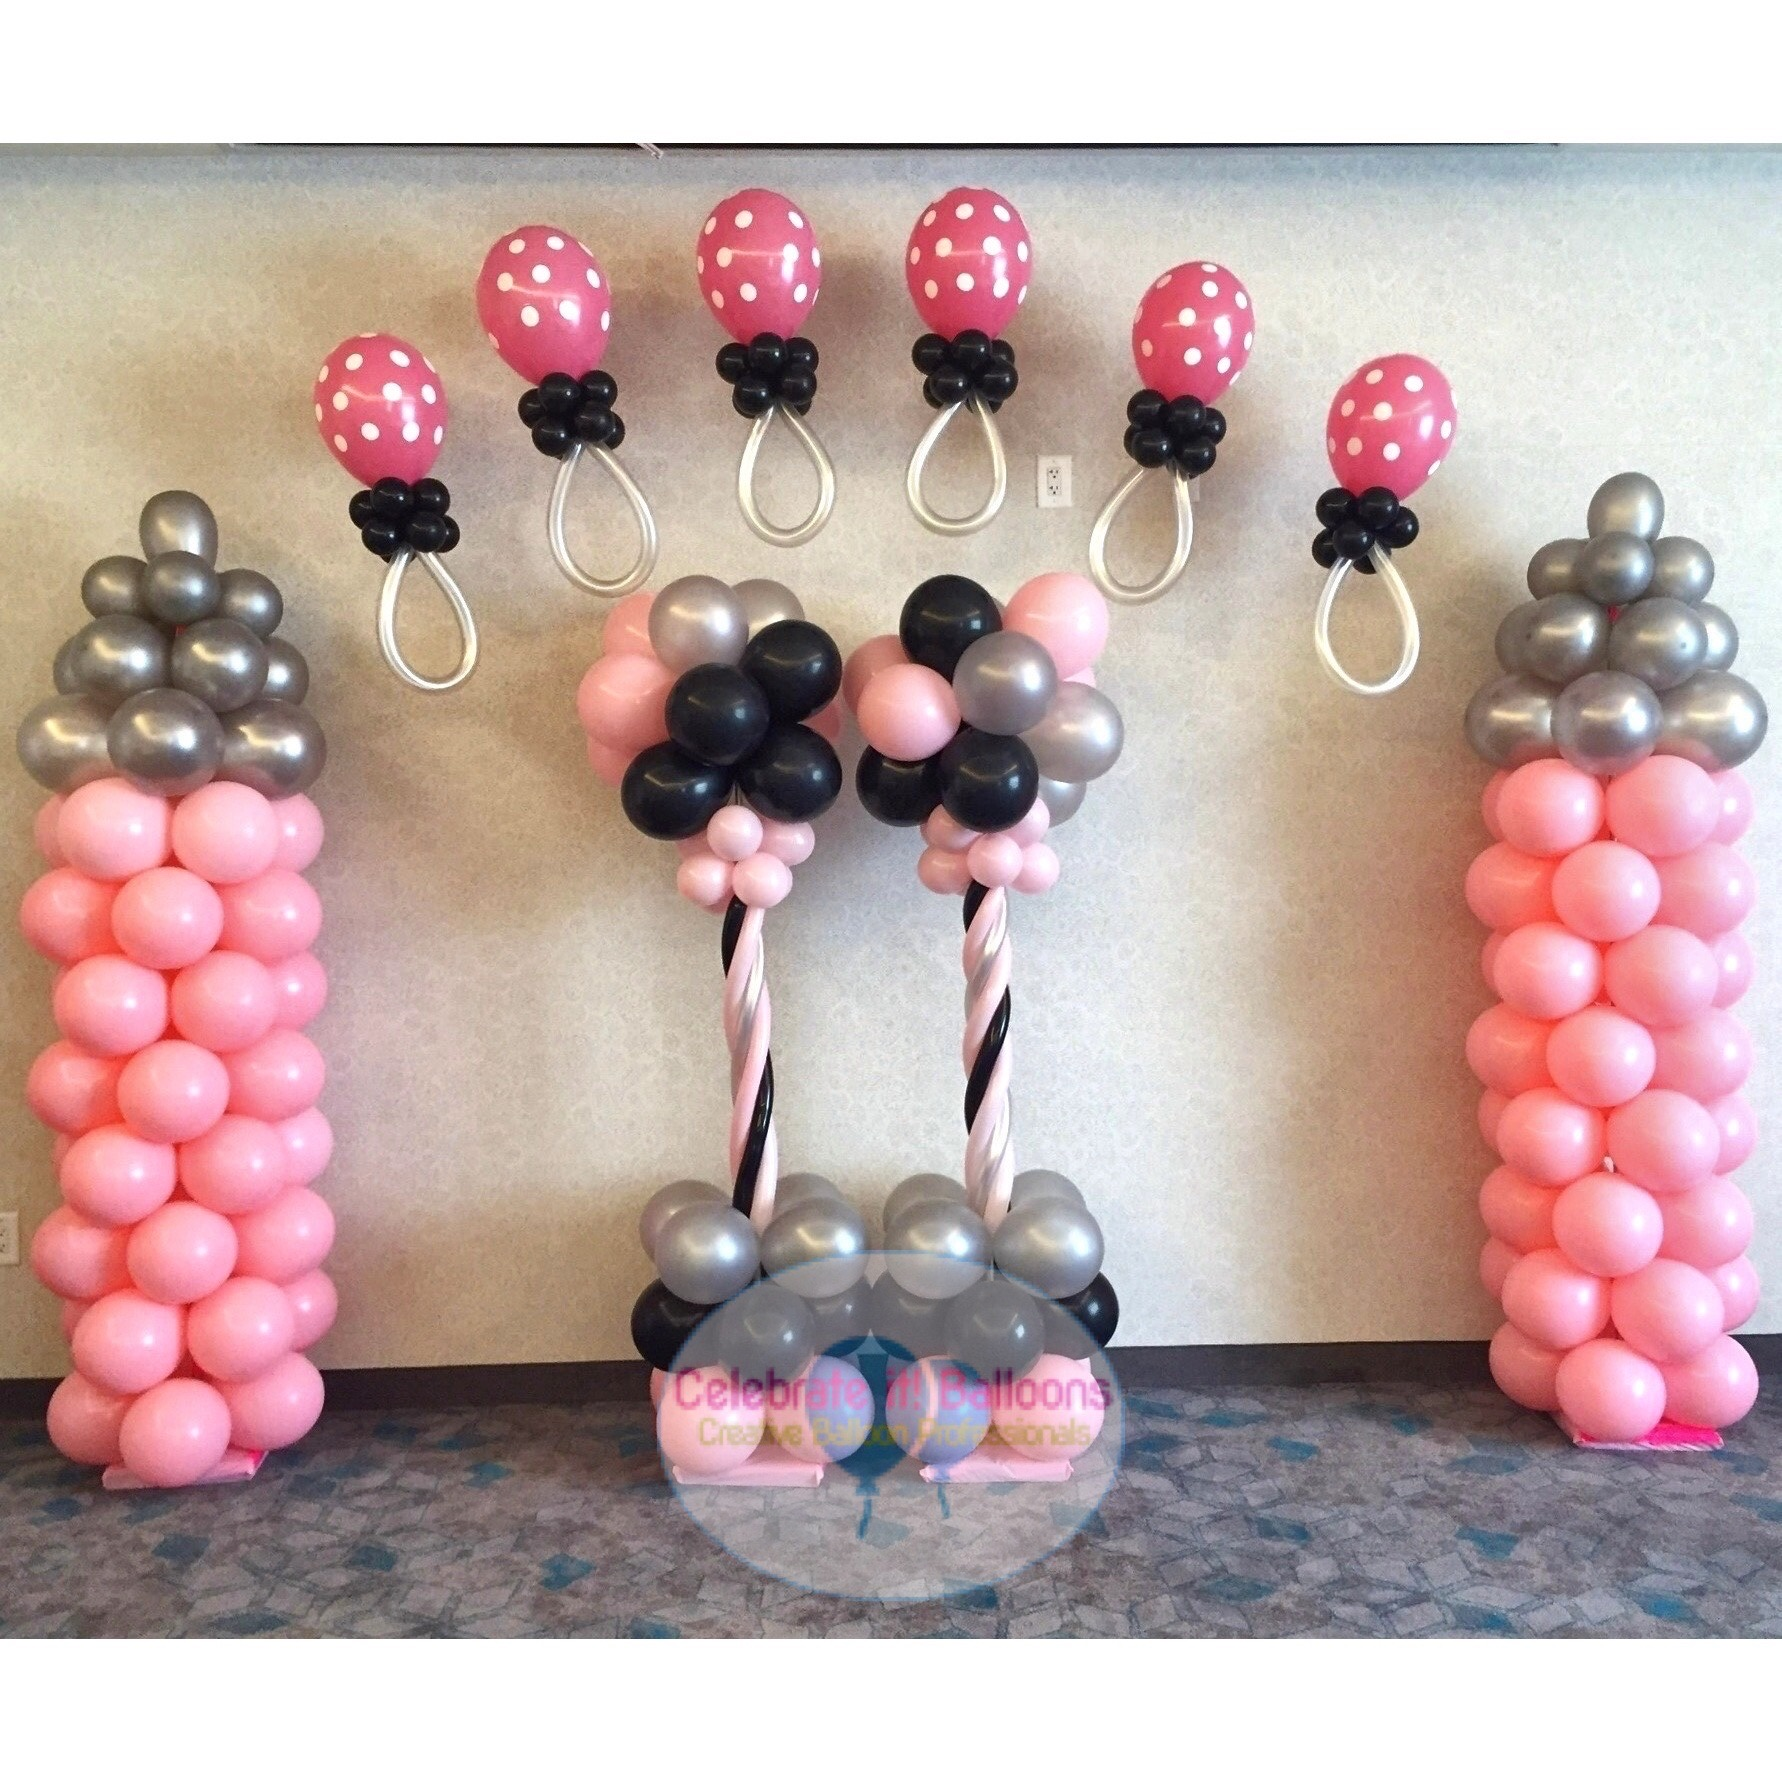 Baby Shower Pacifier Balloon Arch in pink and silver baby bottles with black balloon accents.